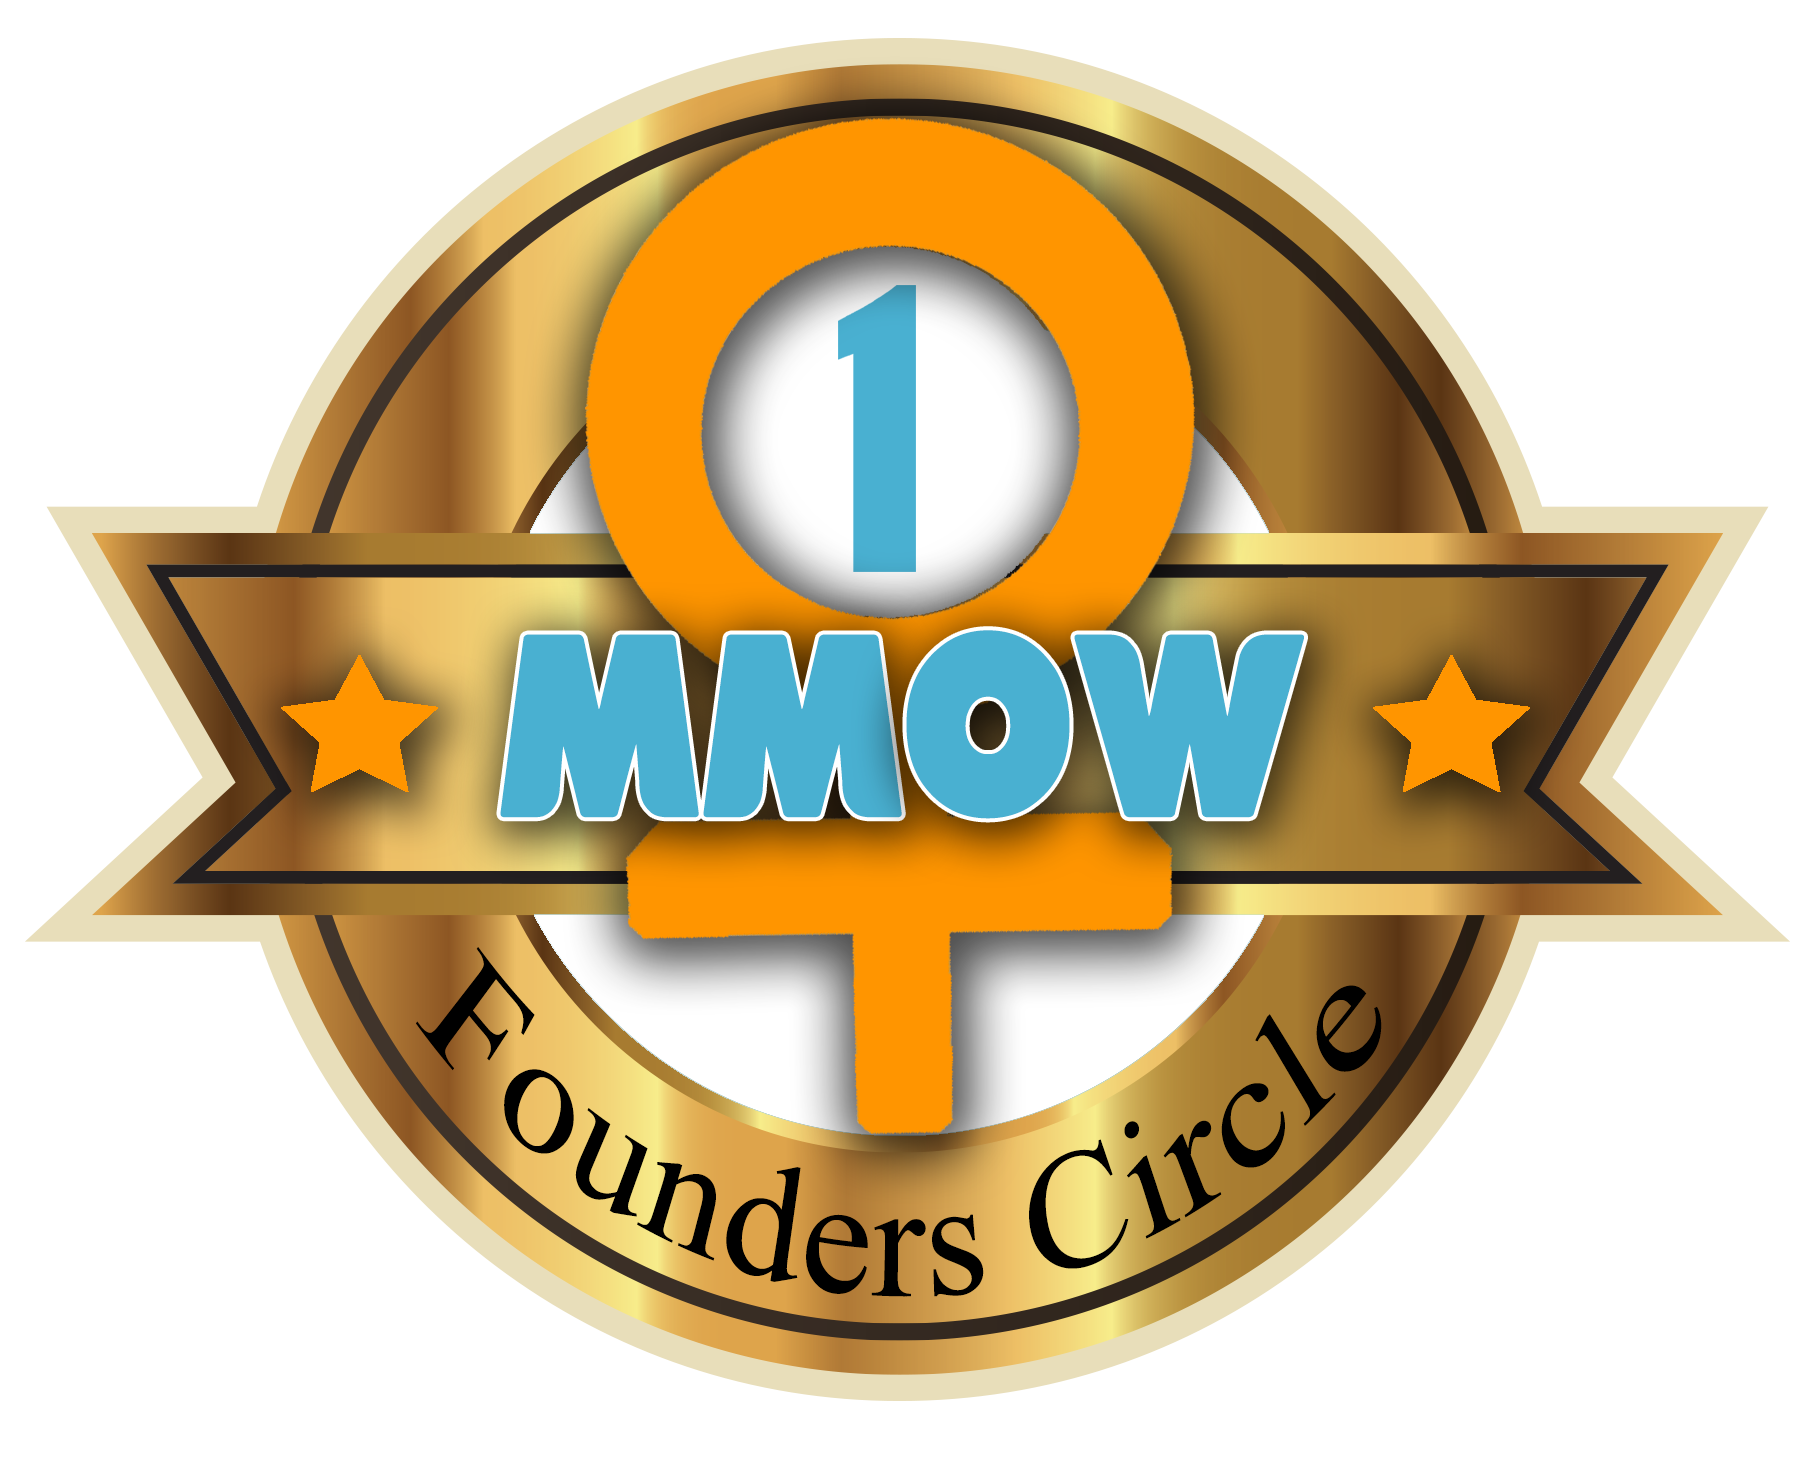 MMOW Founders Circle, Internet Marketing Expert